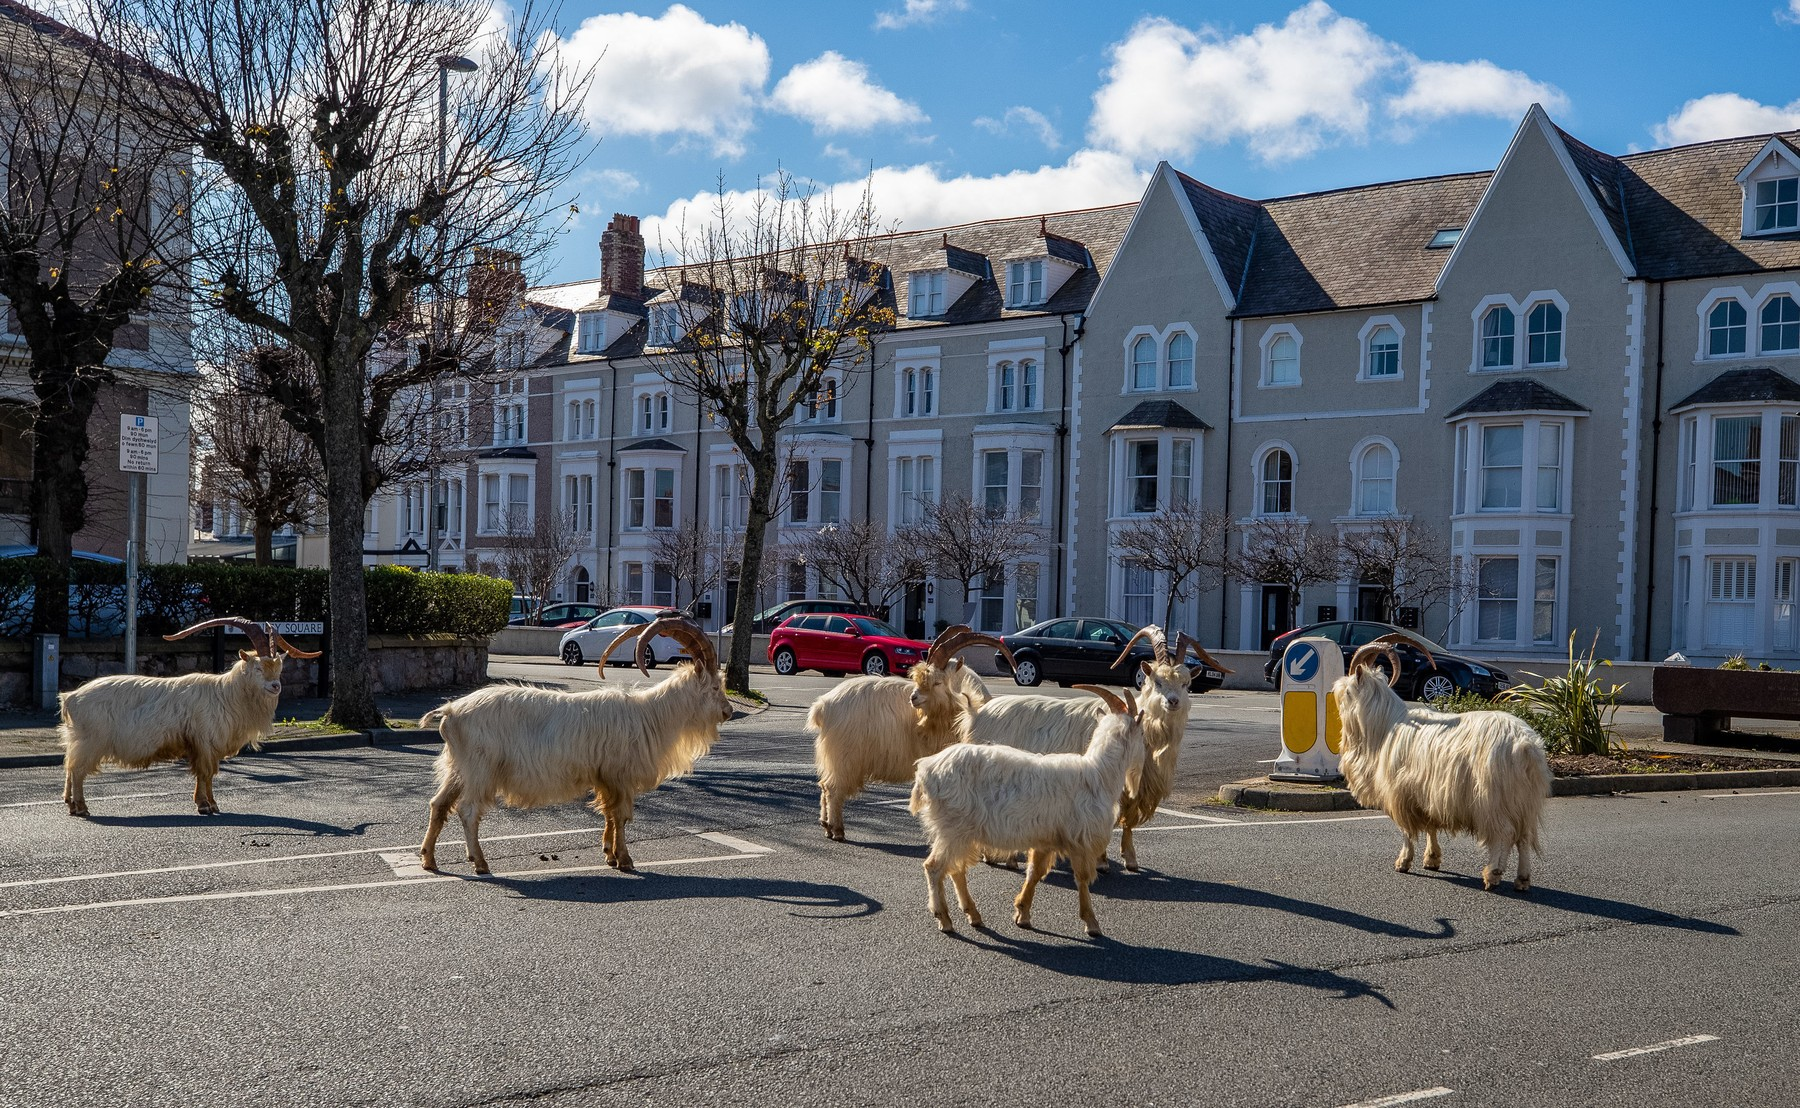 RETRANSMITTING CORRECTING DATE A herd of goats take advantage of quiet streets near Trinity Square, in Llandudno, north Wales. The gang of goats has been spotted strolling around the deserted streets of the seaside town during the nationwide lockdown., Image: 510882432, License: Rights-managed, Restrictions: , Model Release: no, Credit line: Peter Byrne / PA Images / Profimedia